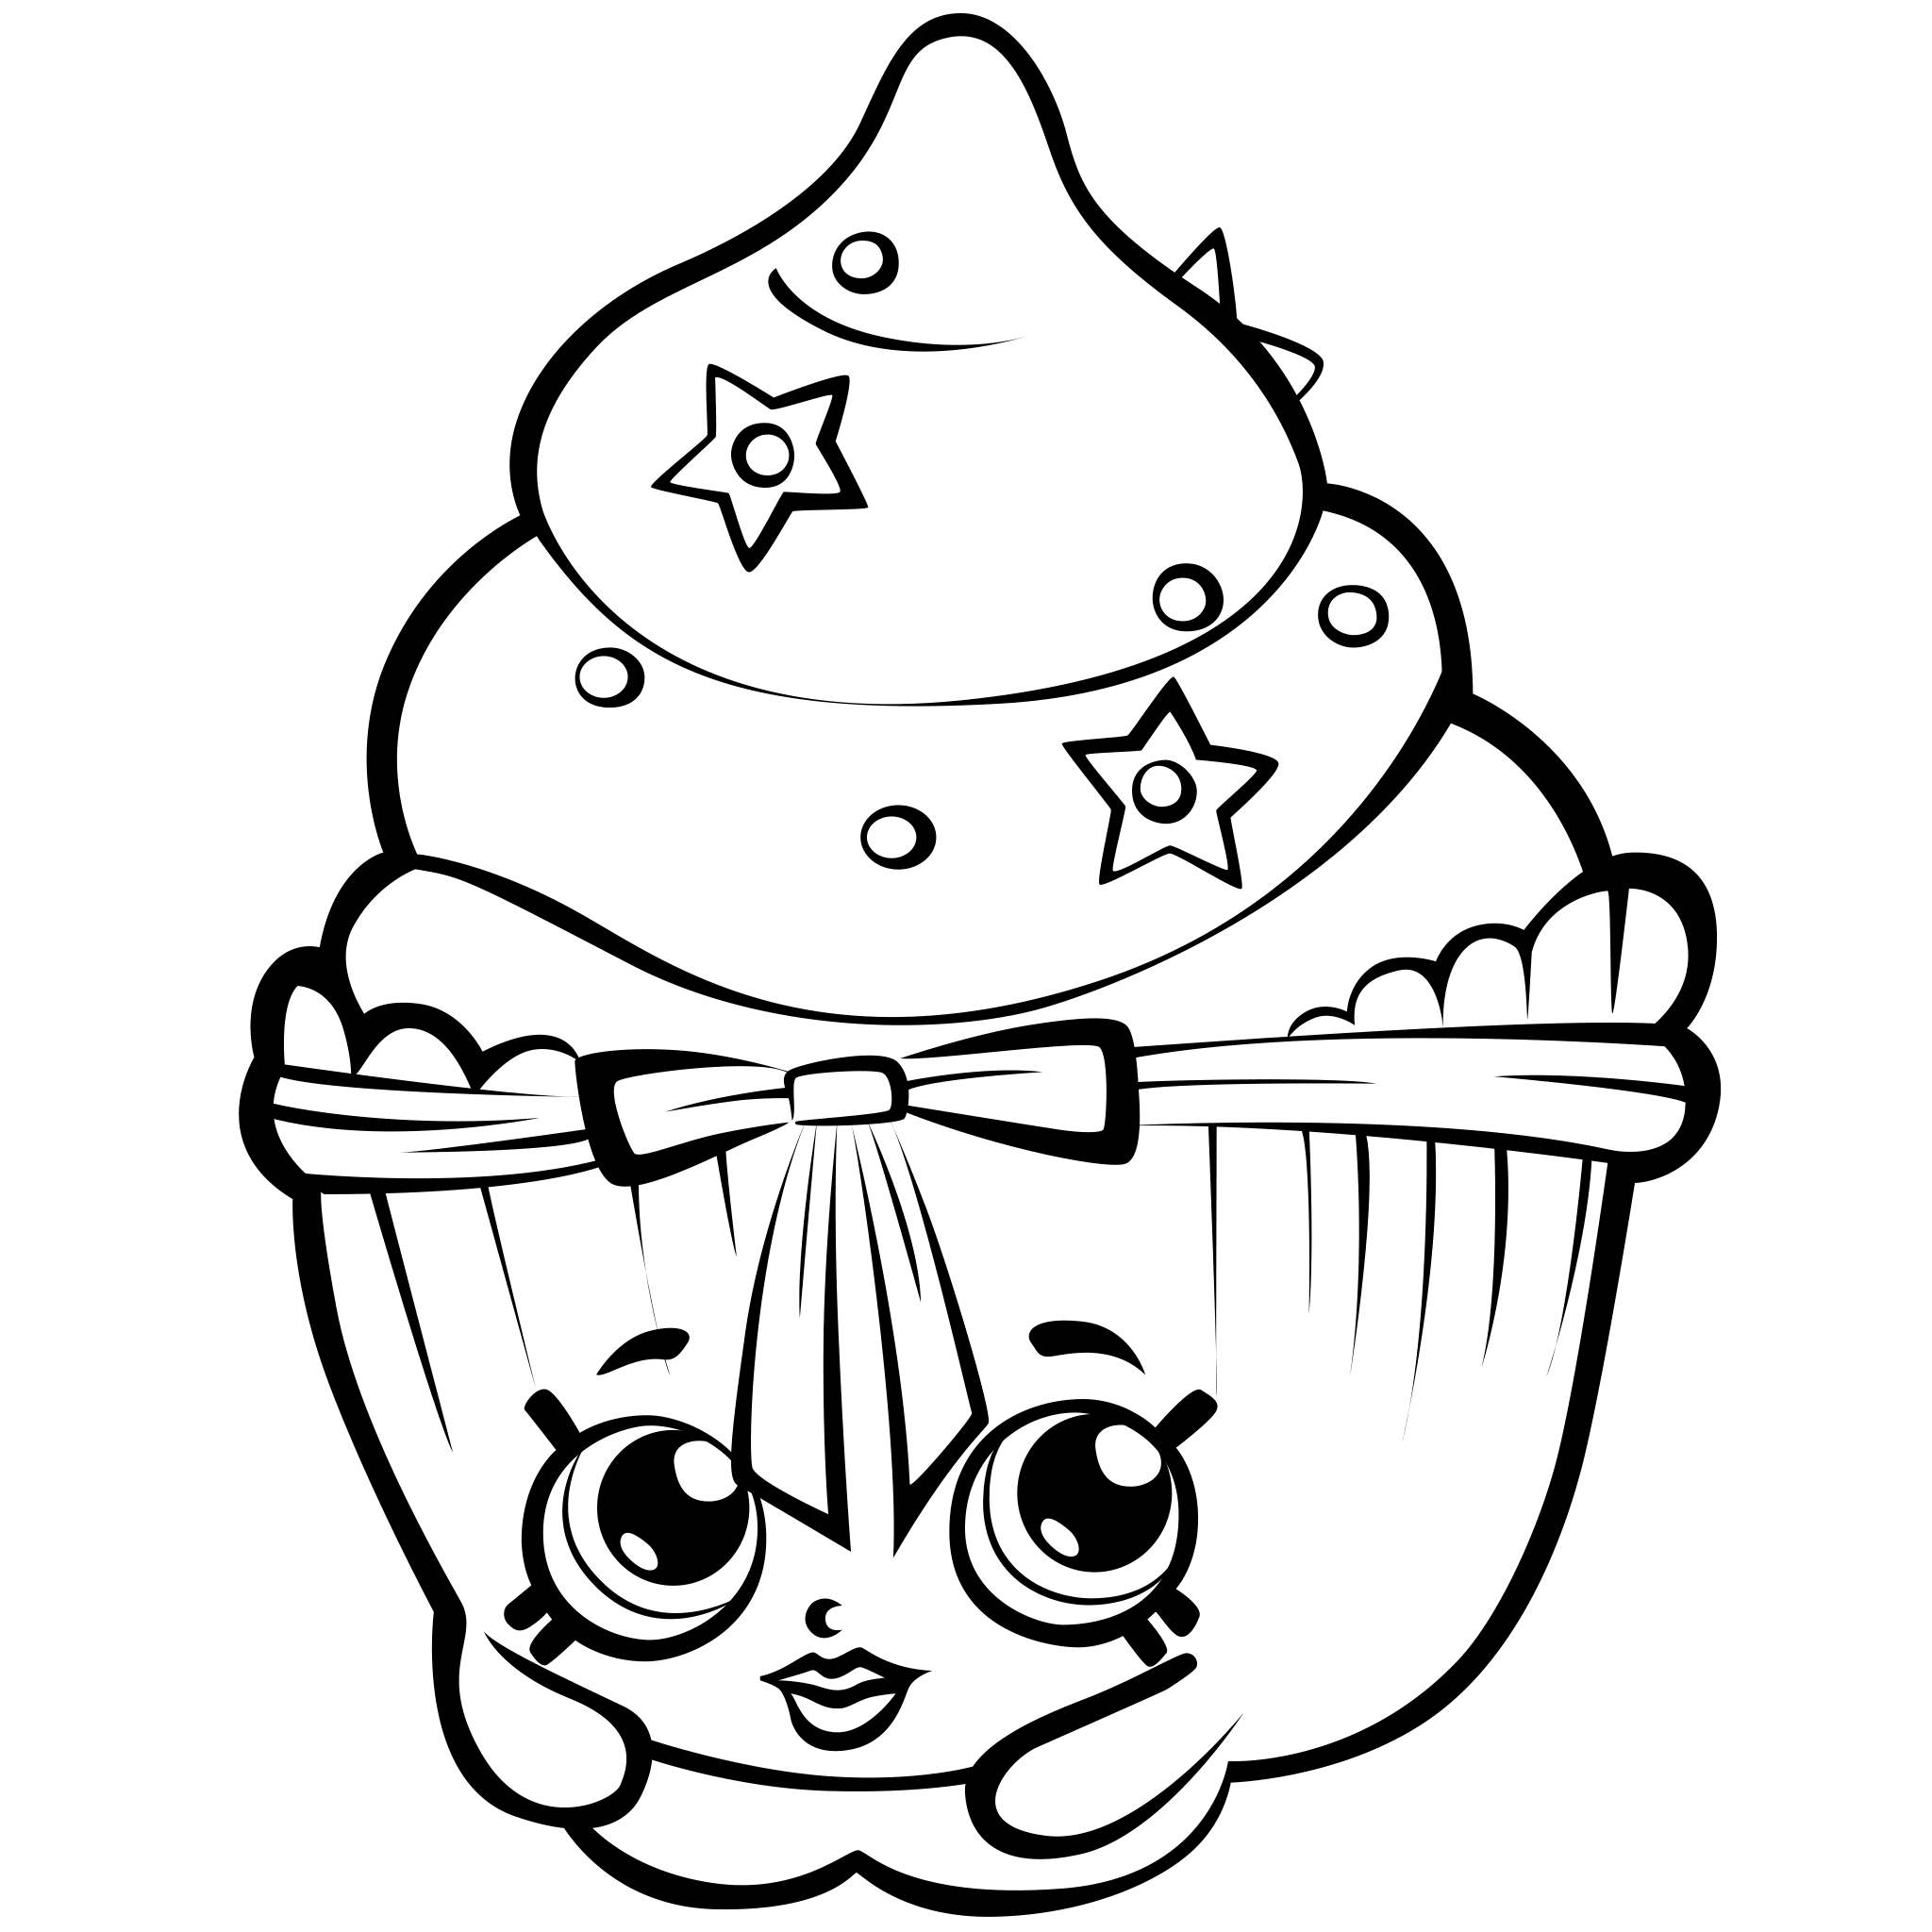 coloring pages shopkin shopkins coloring pages best coloring pages for kids coloring shopkin pages 1 6